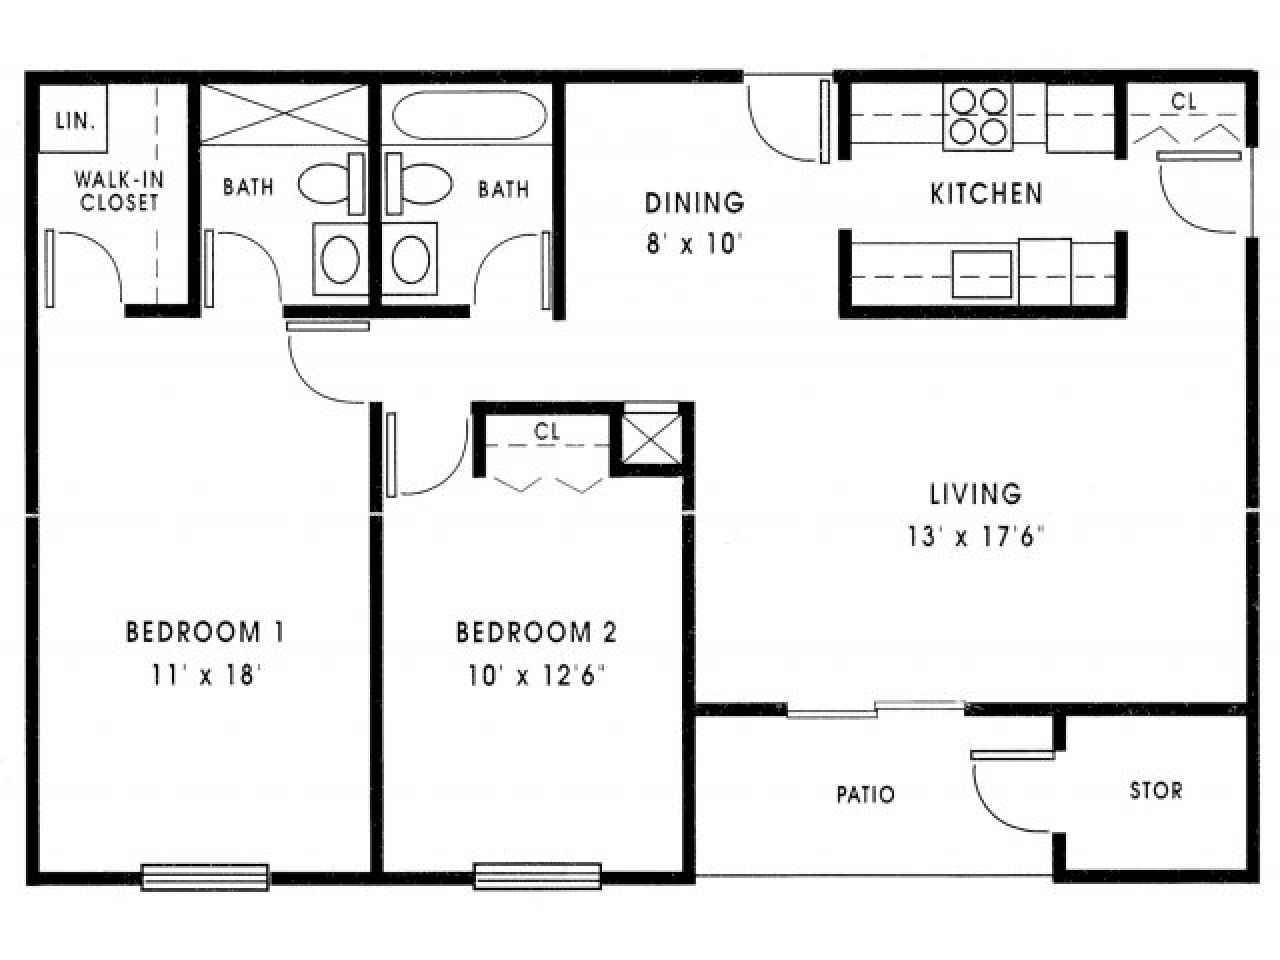 1000 Sq Ft House Plans 3 Bedroom | 2 bedroom house plans, Bedroom ...